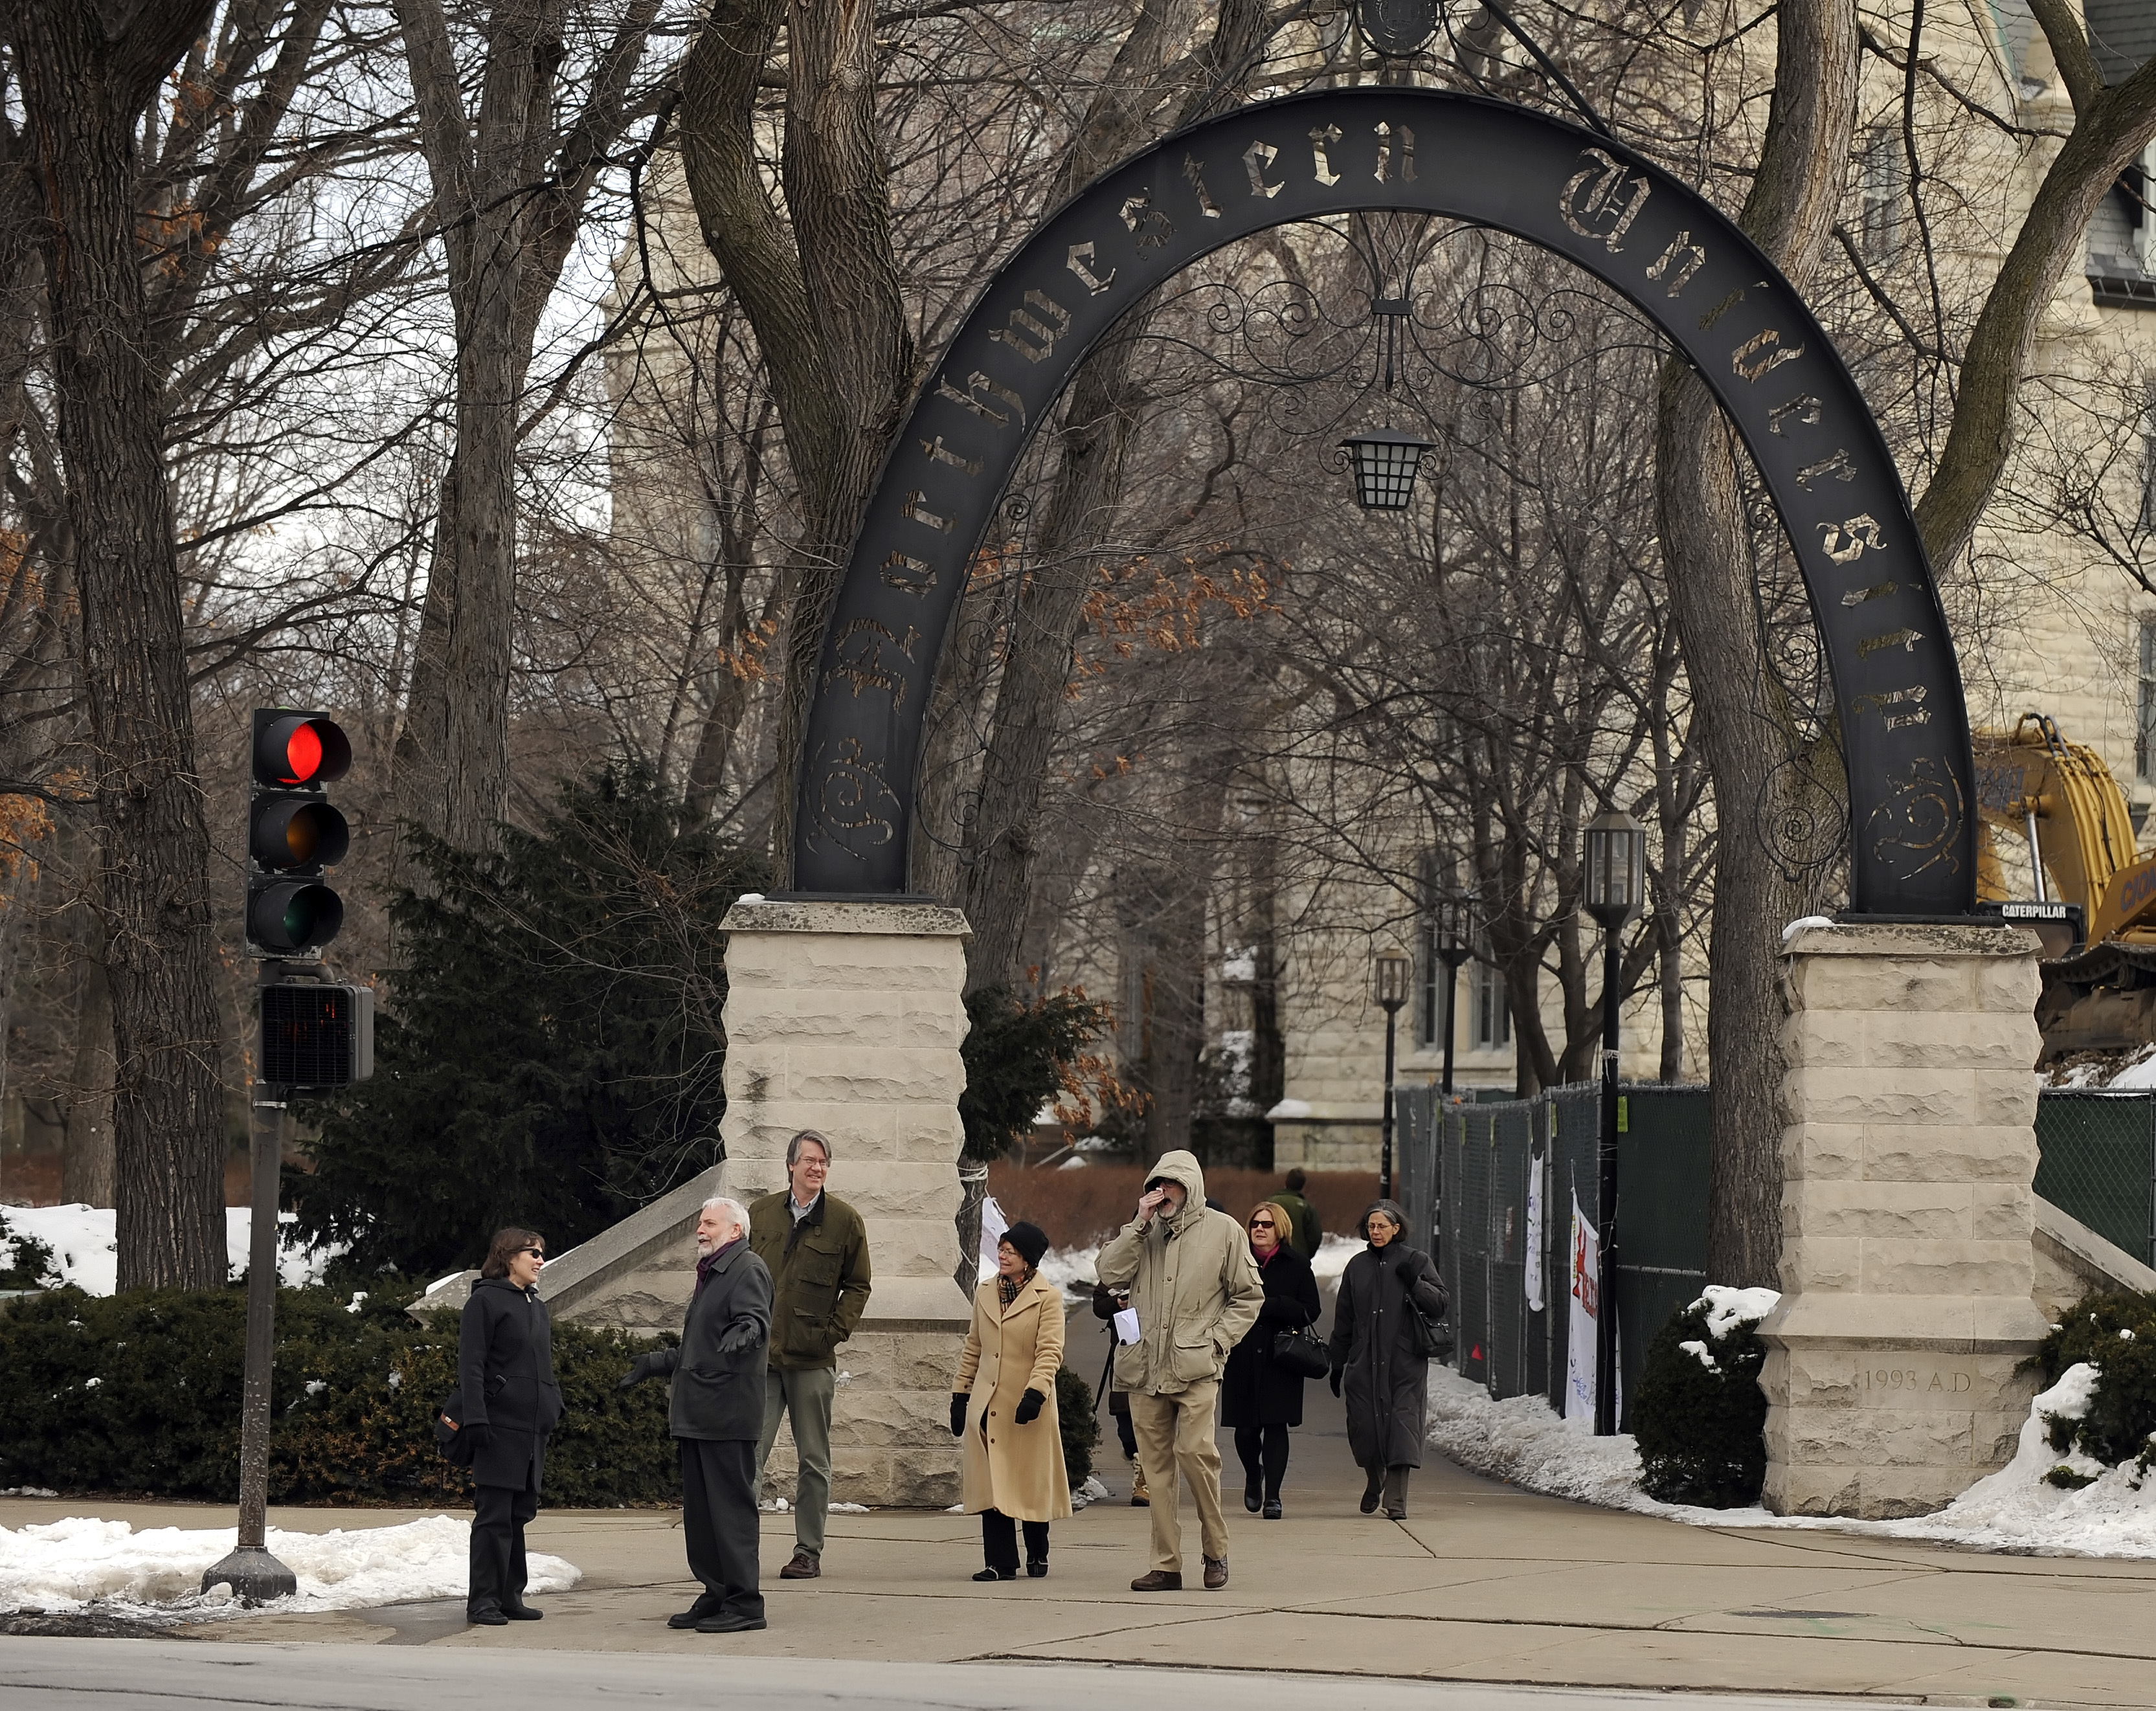 Northwestern, along with Loyola University Chicago, announced plans to reopen their campuses more widely in the winter.